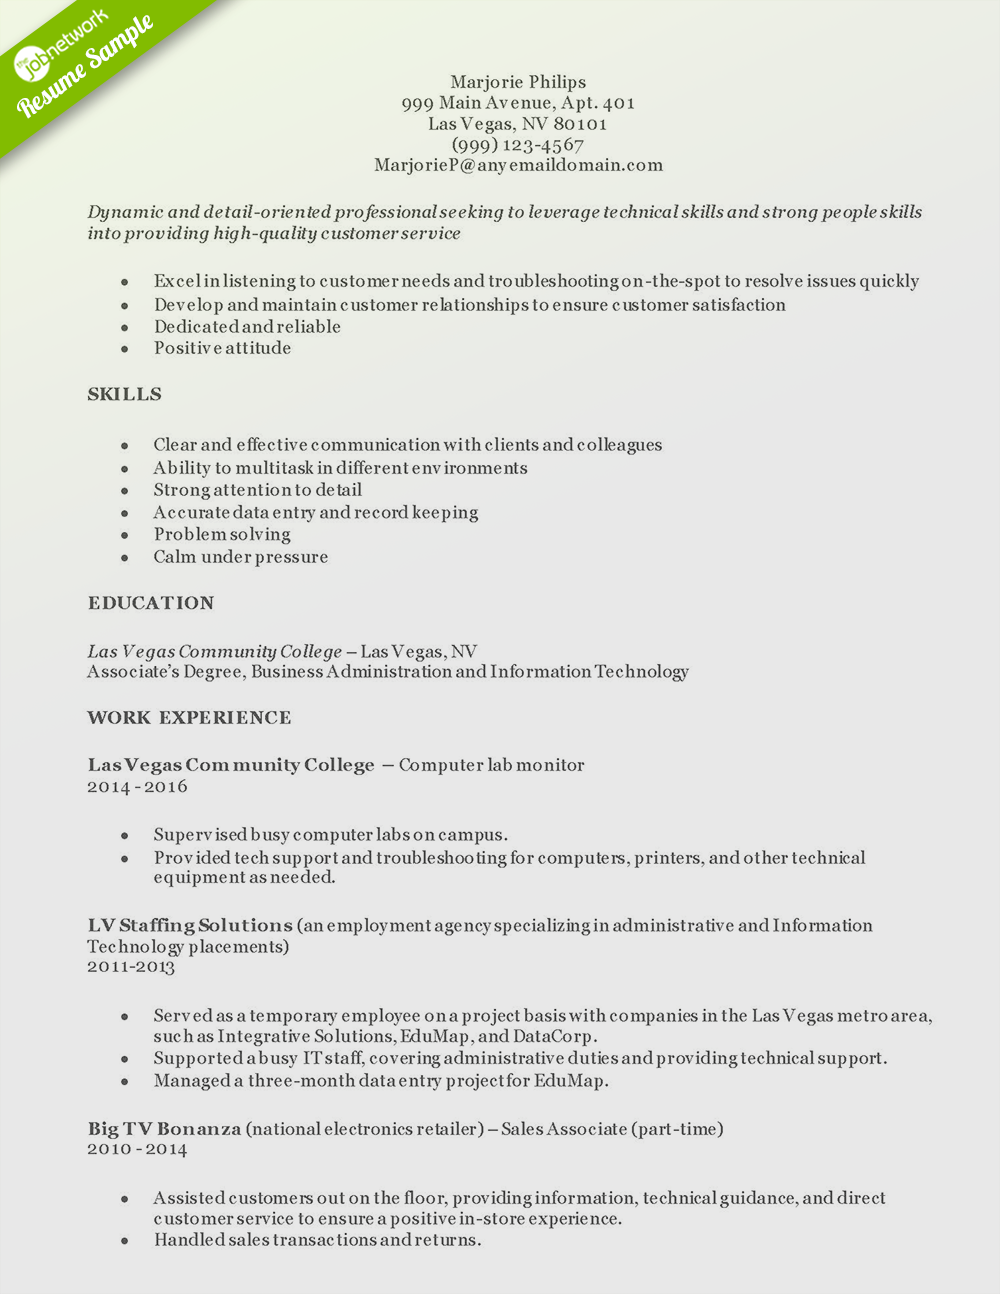 Customer Service Resume  Customer Service Resume Sample